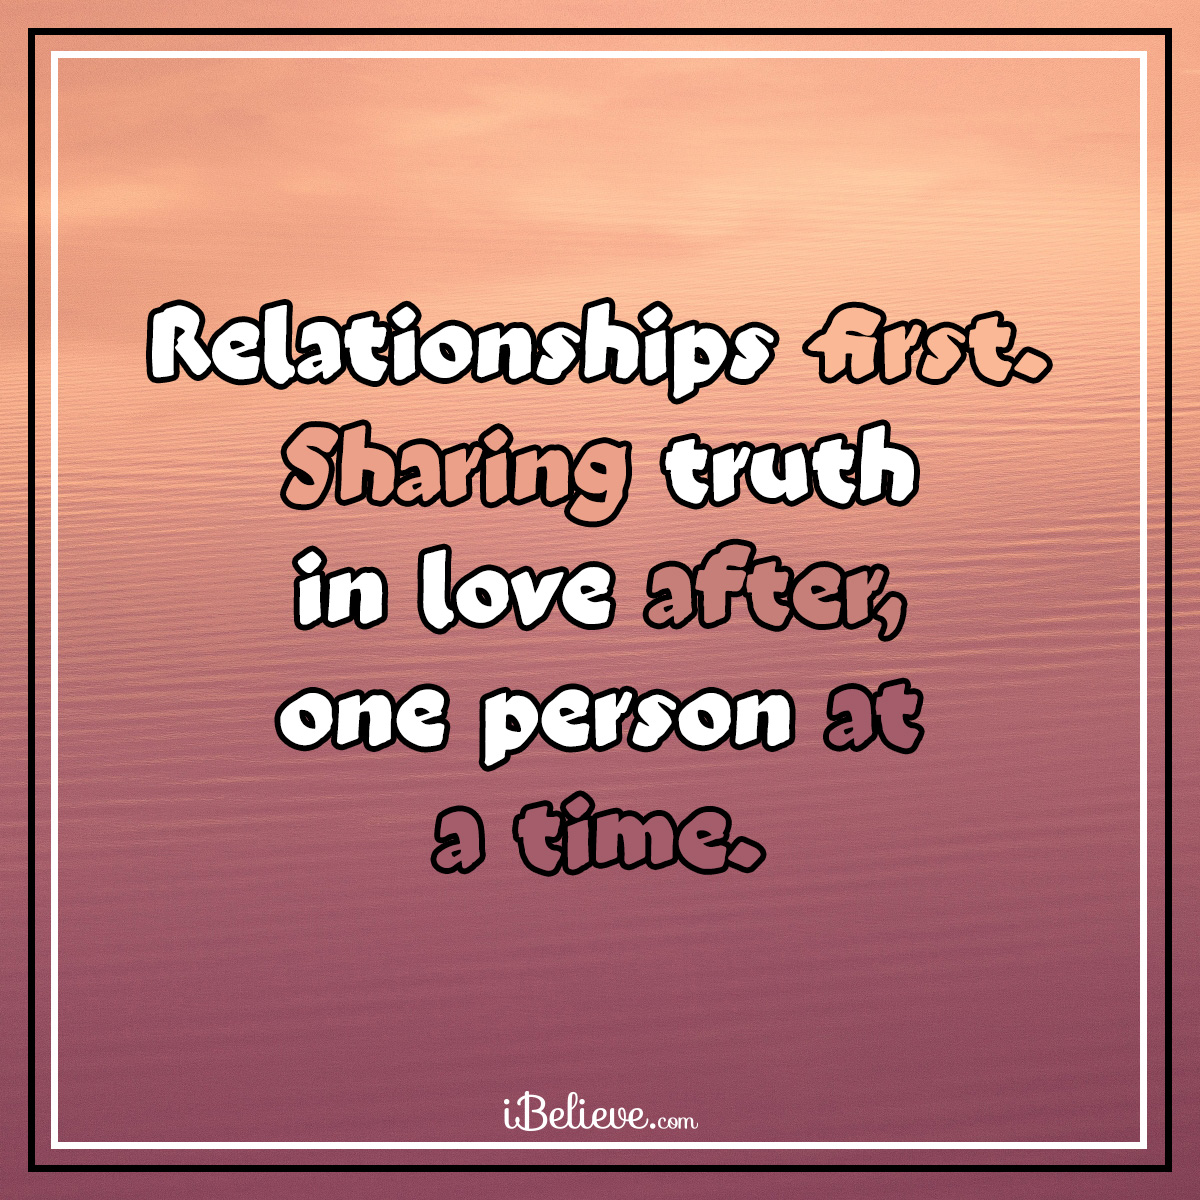 relationships first, inspirational image